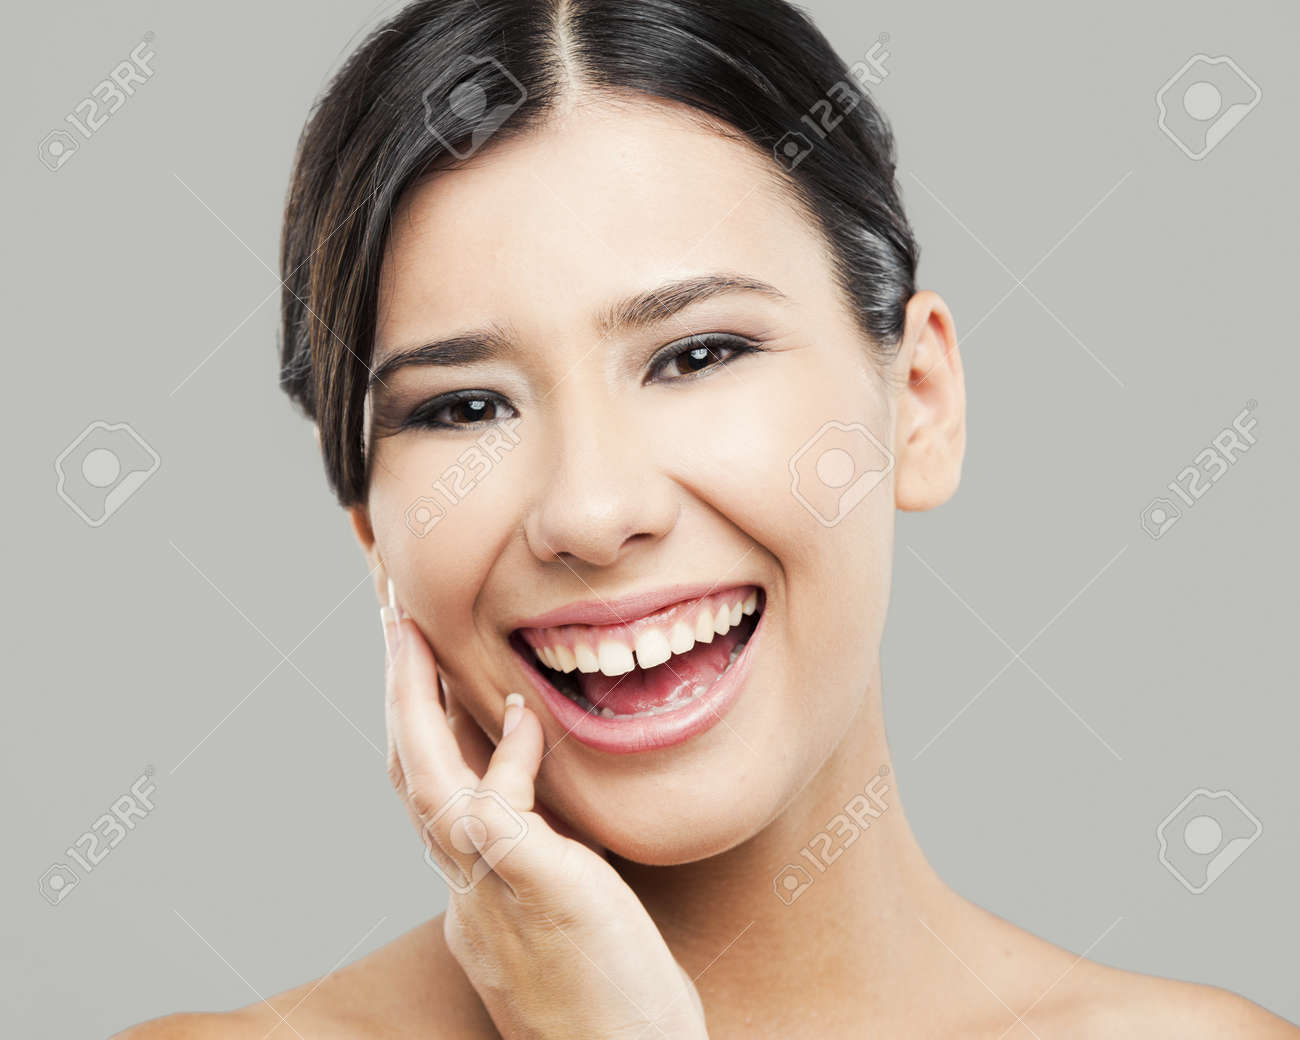 Beauty portrait of young asian woman laughing, isolated over a gray background Stock Photo - 17903515